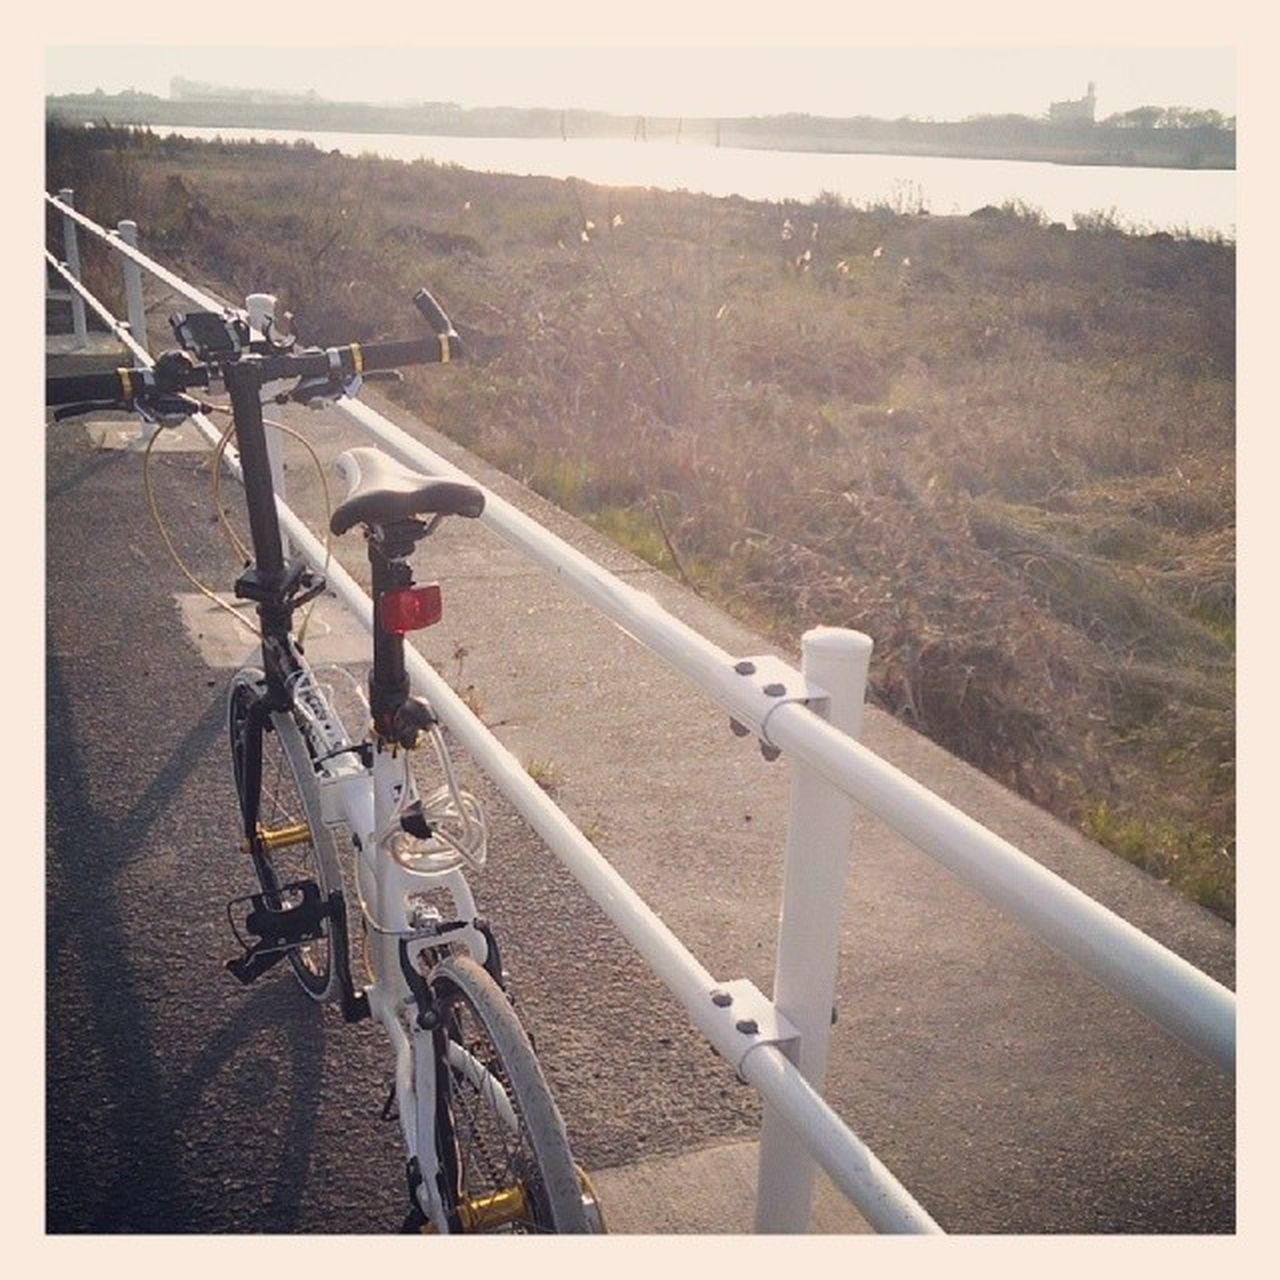 bicycle, transportation, mode of transport, day, railing, land vehicle, outdoors, no people, road, nature, landscape, sky, tree